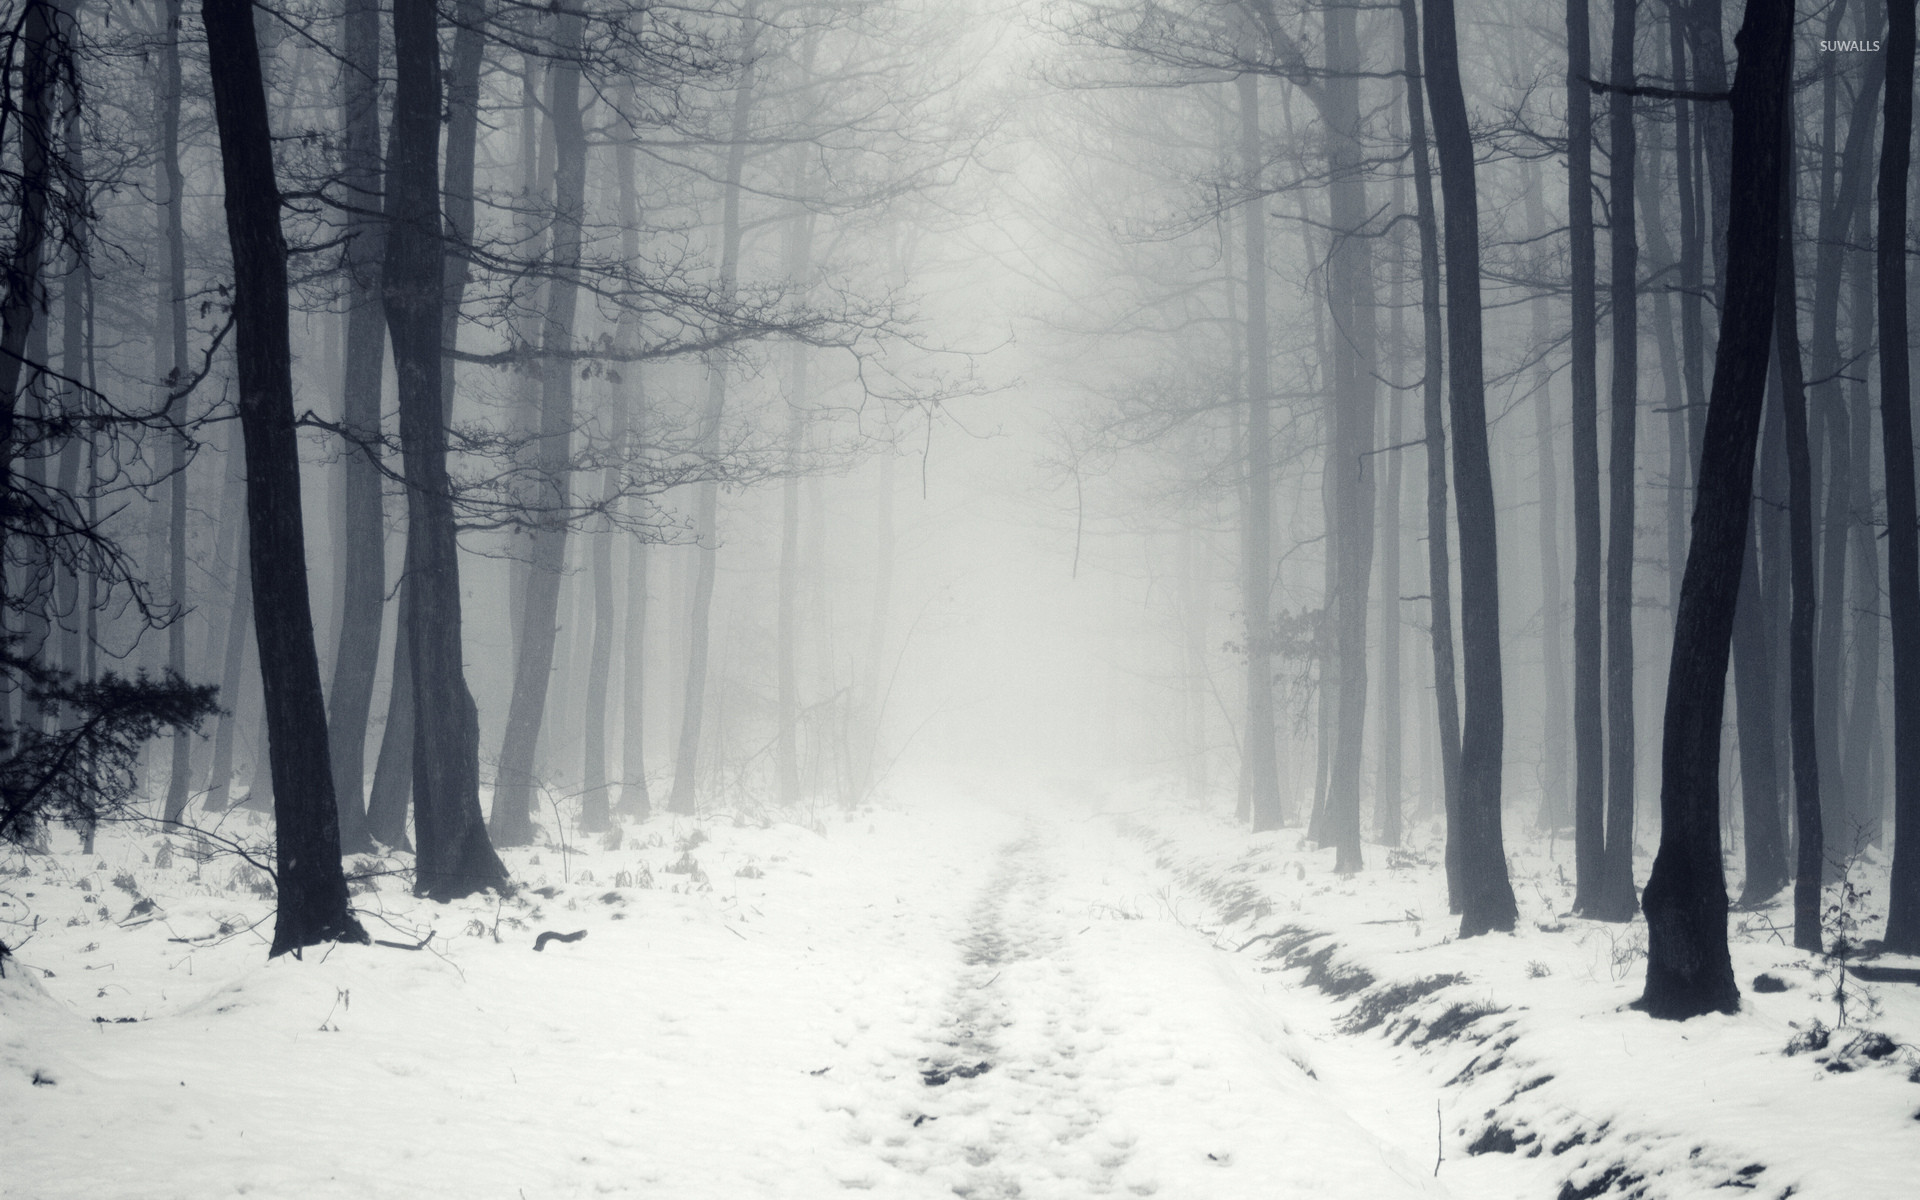 … snowy path in the foggy forest 2 wallpaper nature wallpapers …